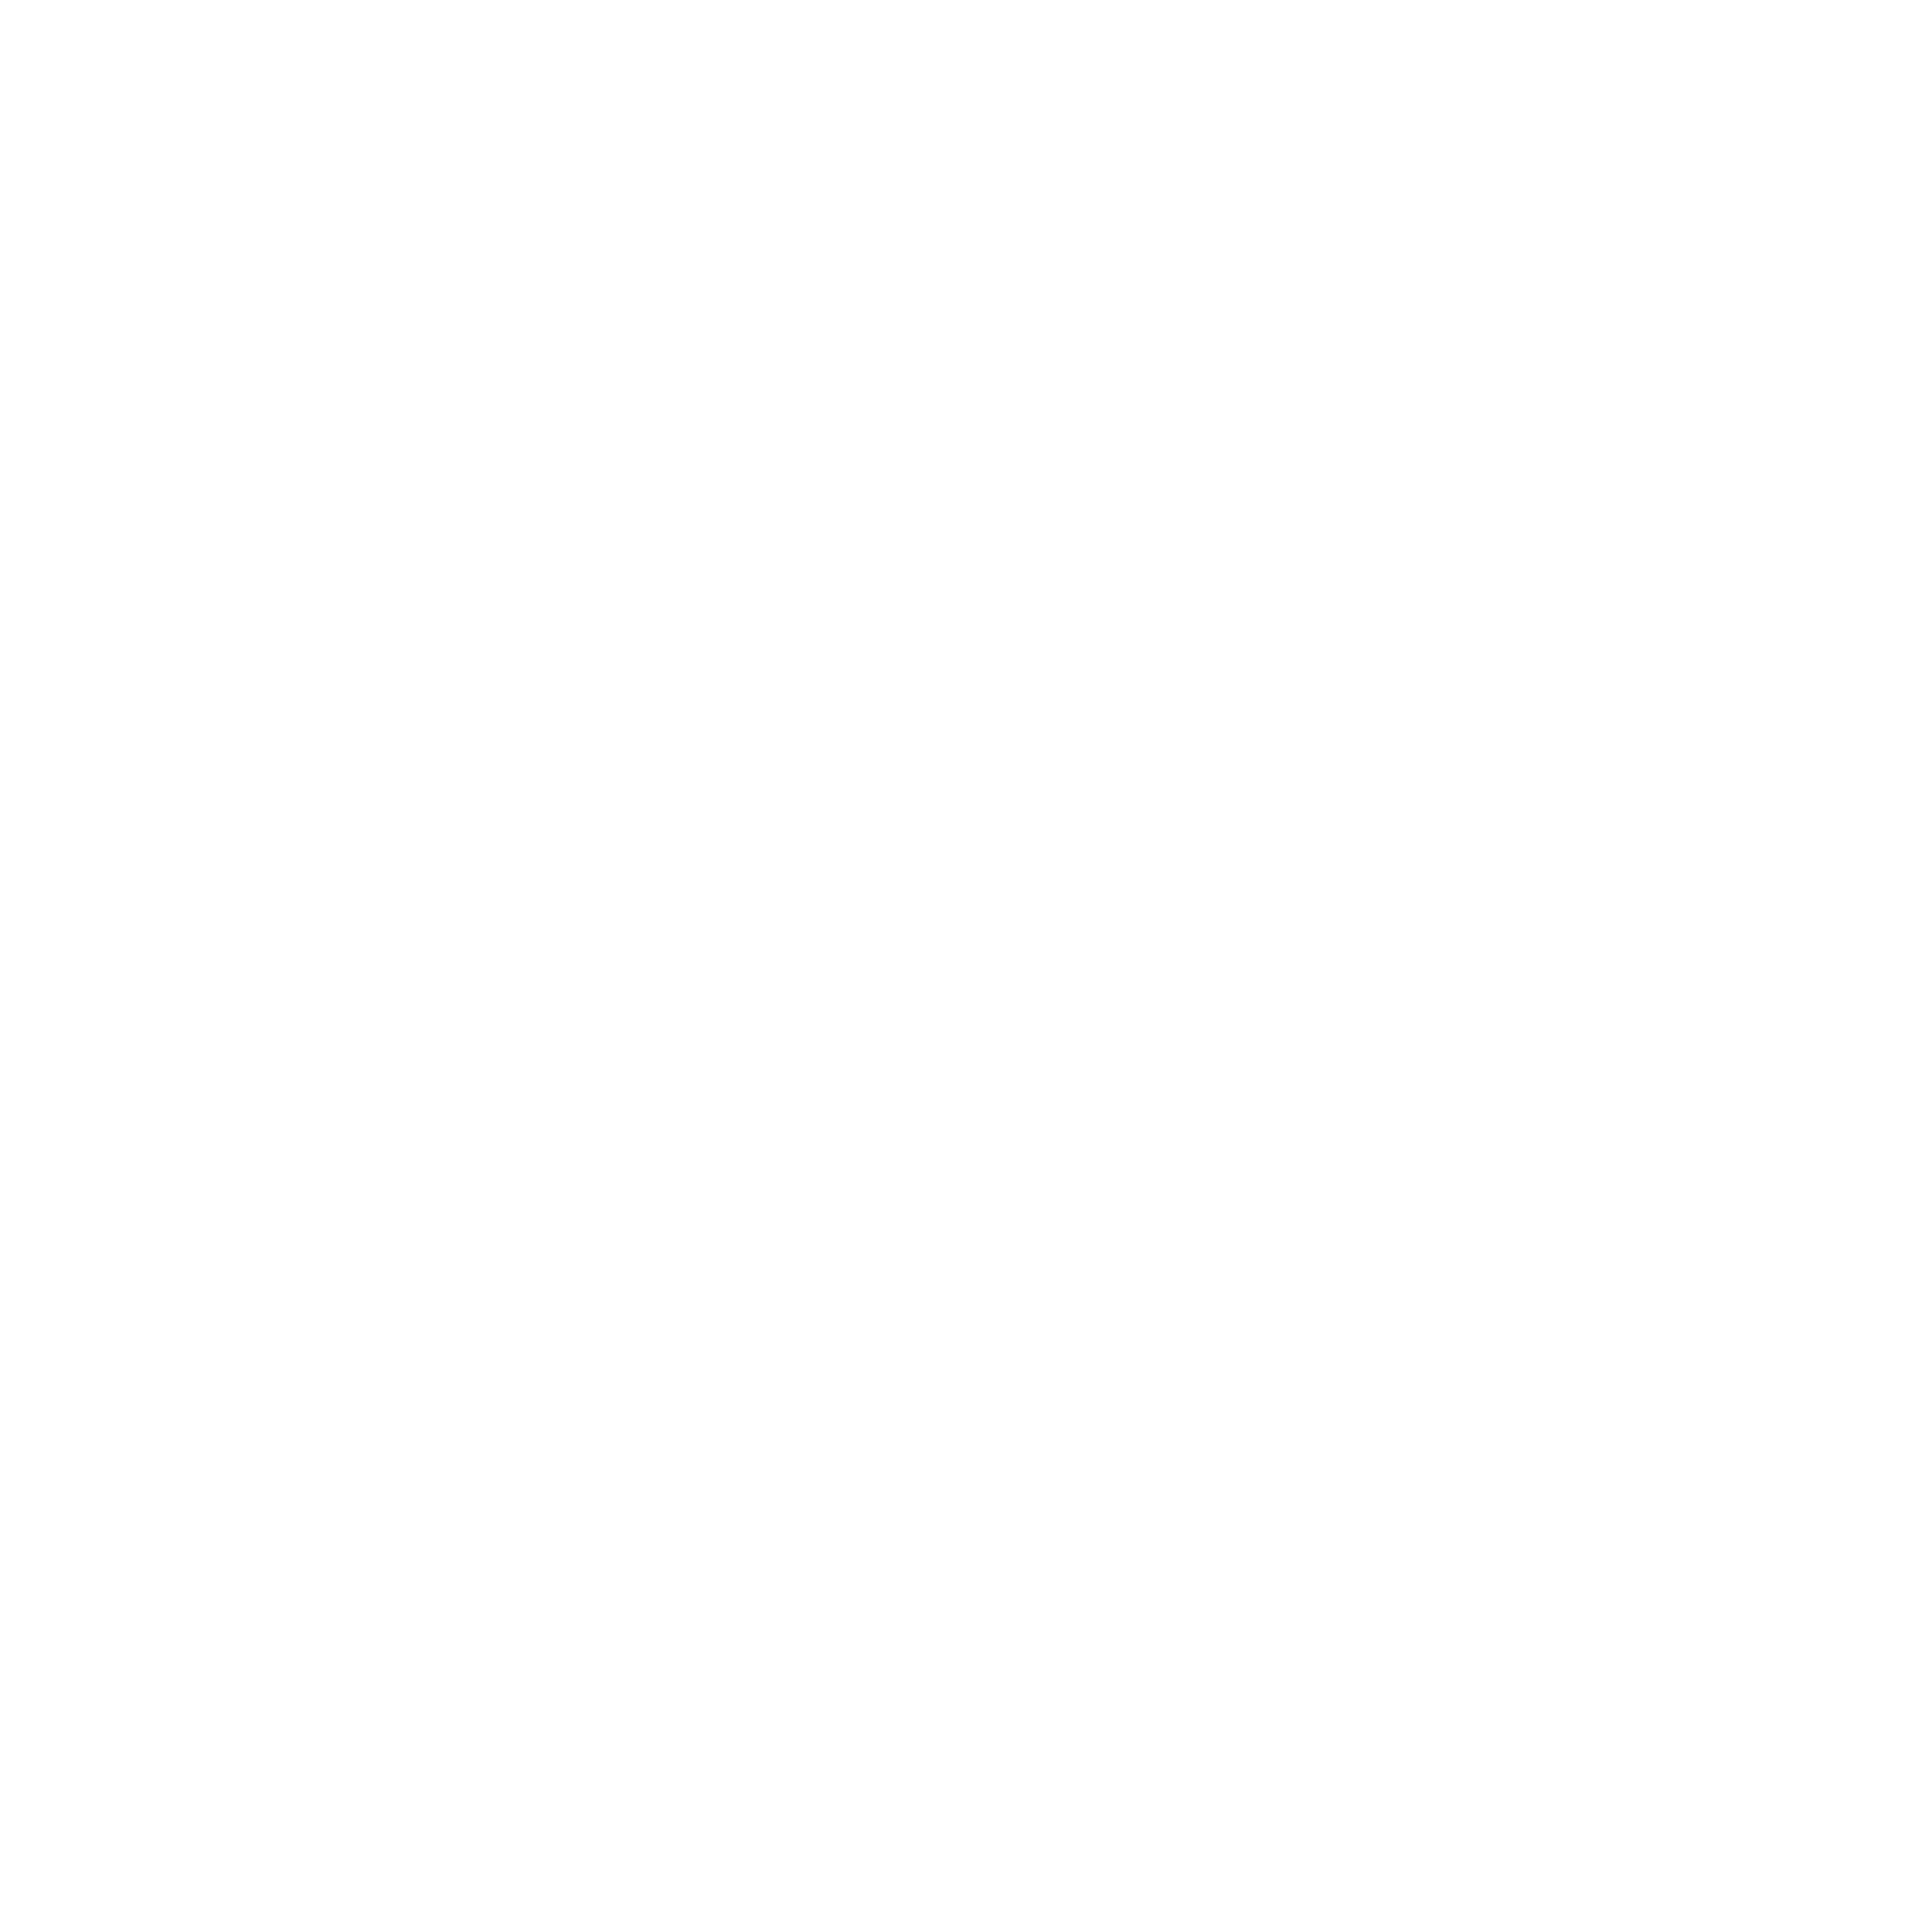 earth-1504059_19201.png